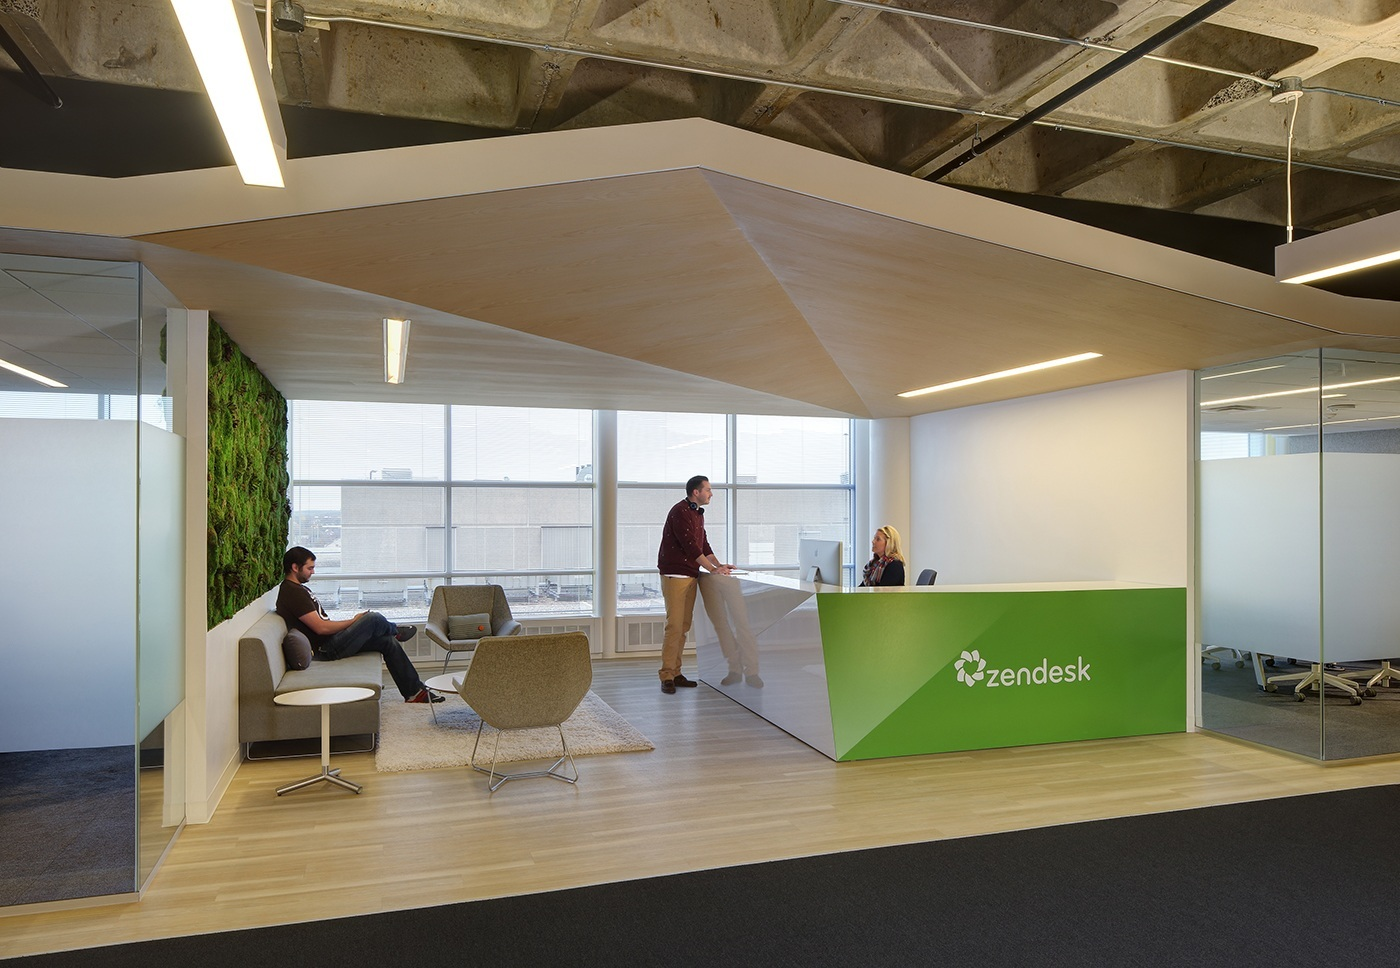 A peek inside zendesk s new madison offices officelovin 39 for Zen office design ideas